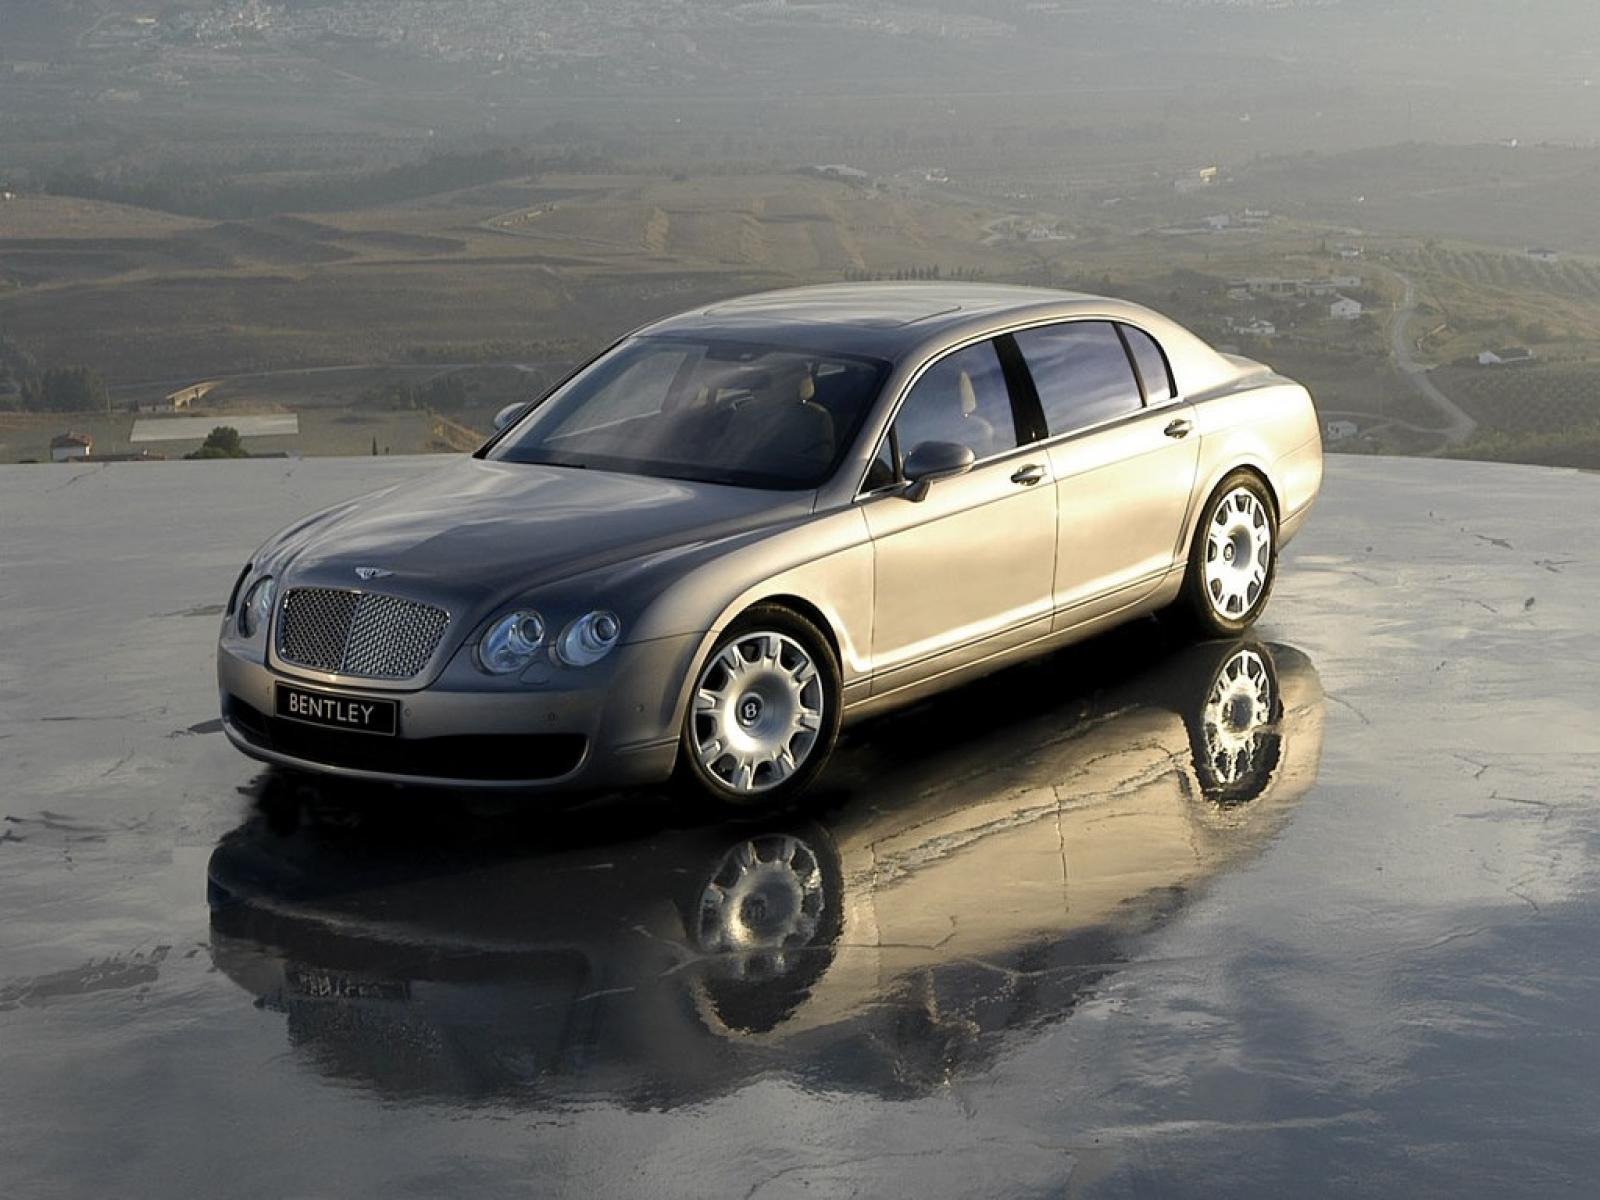 2011 bentley continental flying spur information and photos zombiedrive. Black Bedroom Furniture Sets. Home Design Ideas